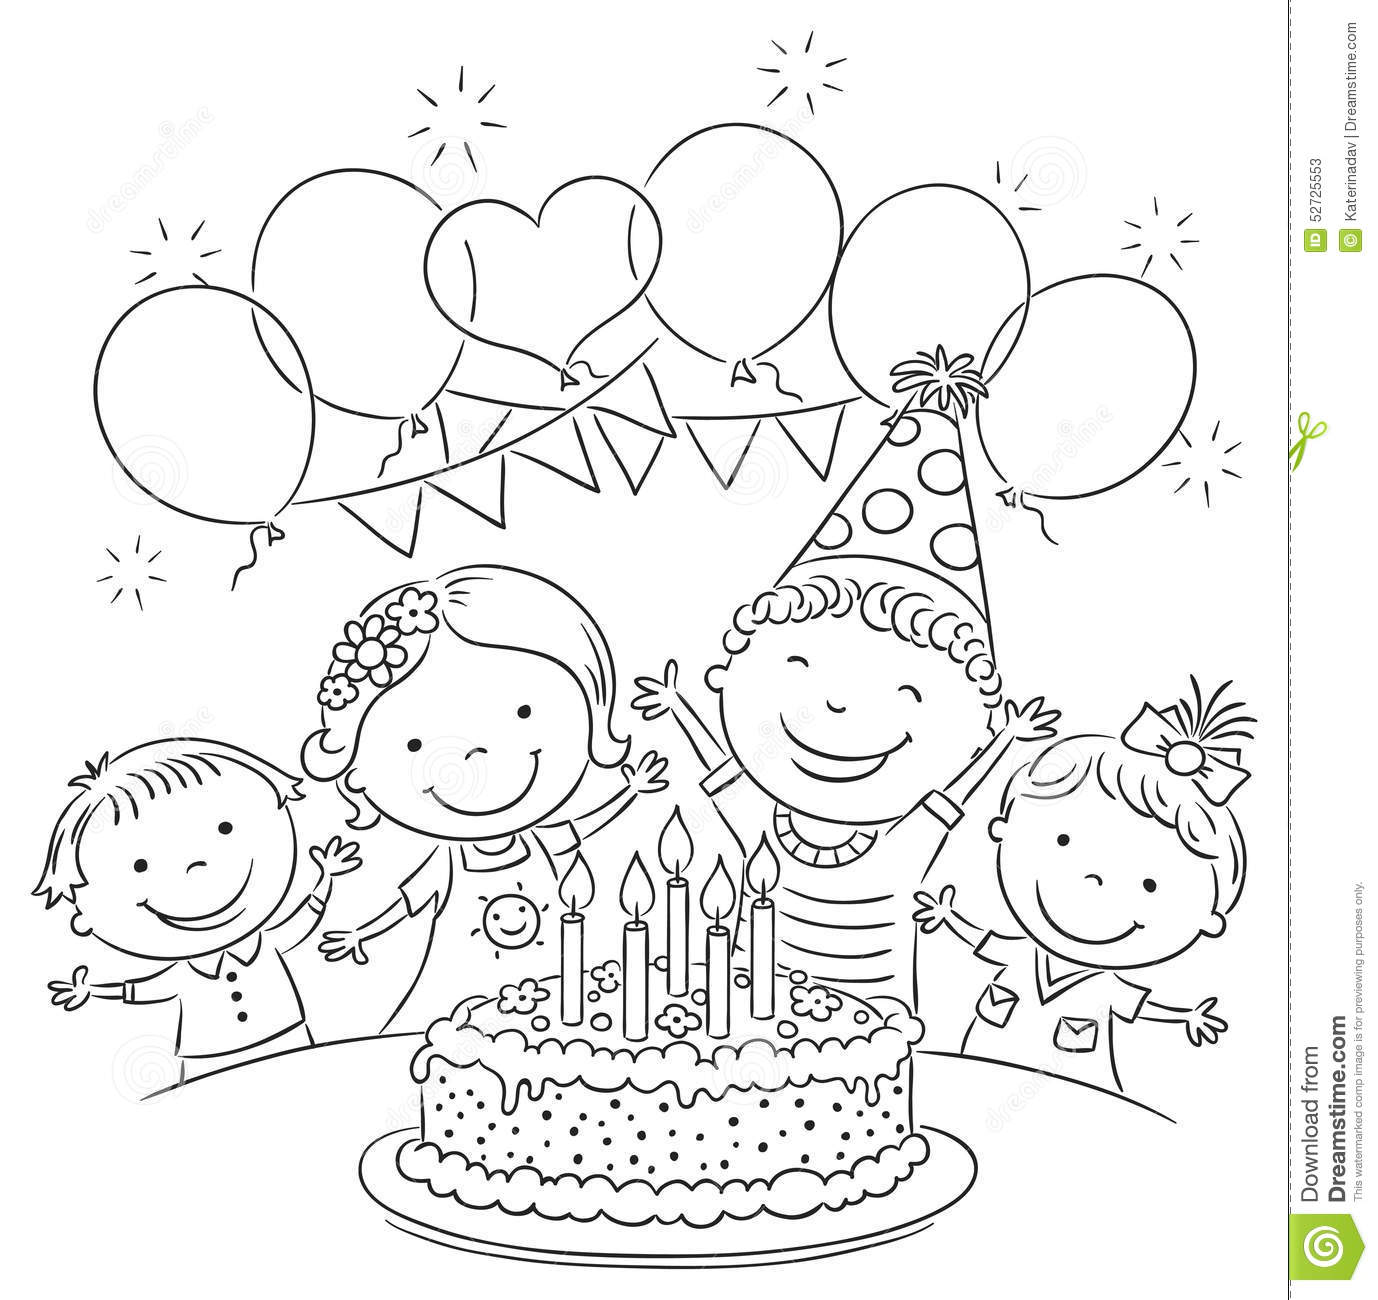 22829 Party free clipart.